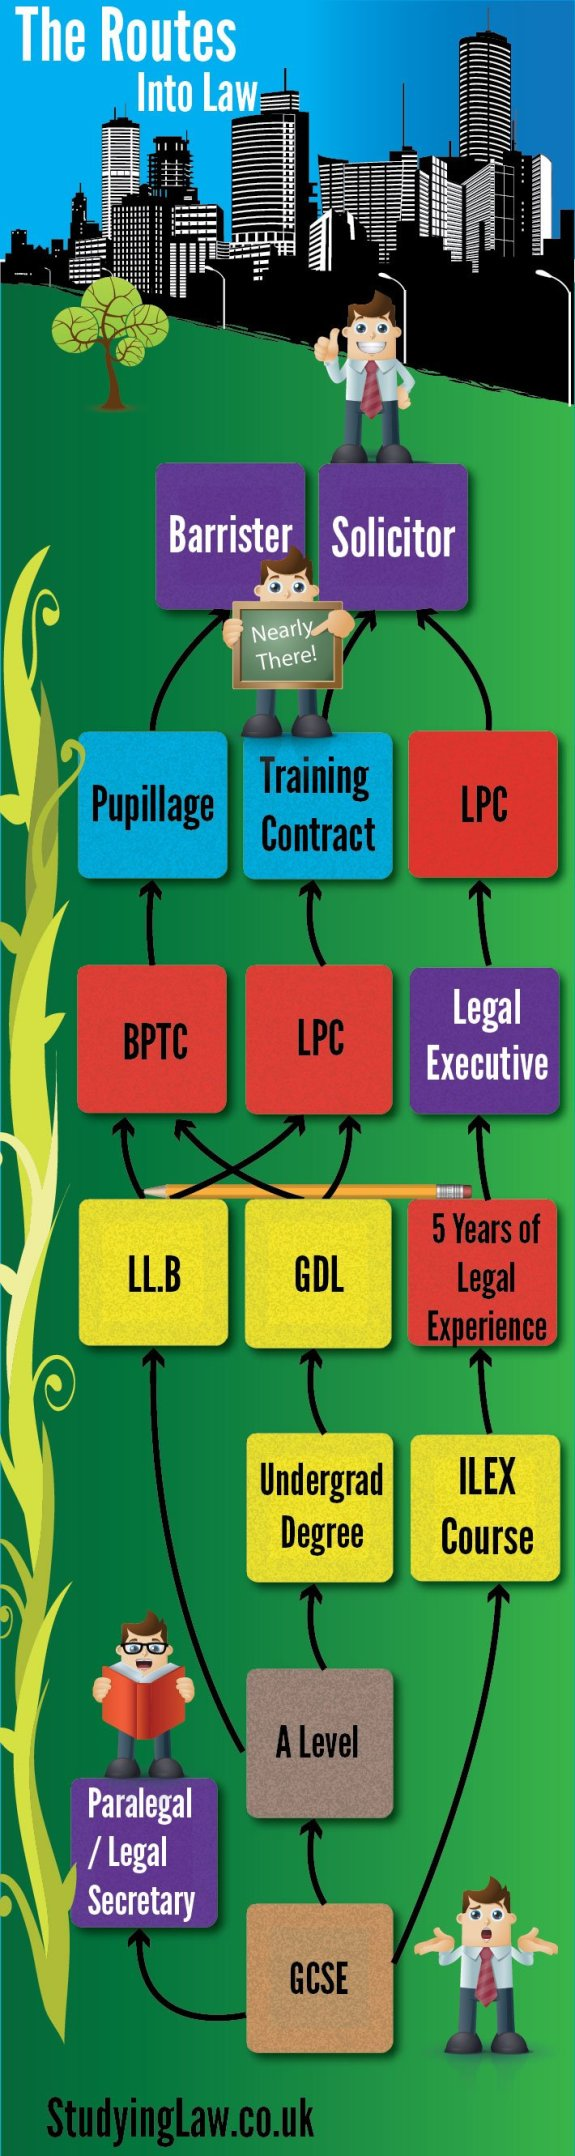 How to get into law infographic - solicitor barrister & legal executive